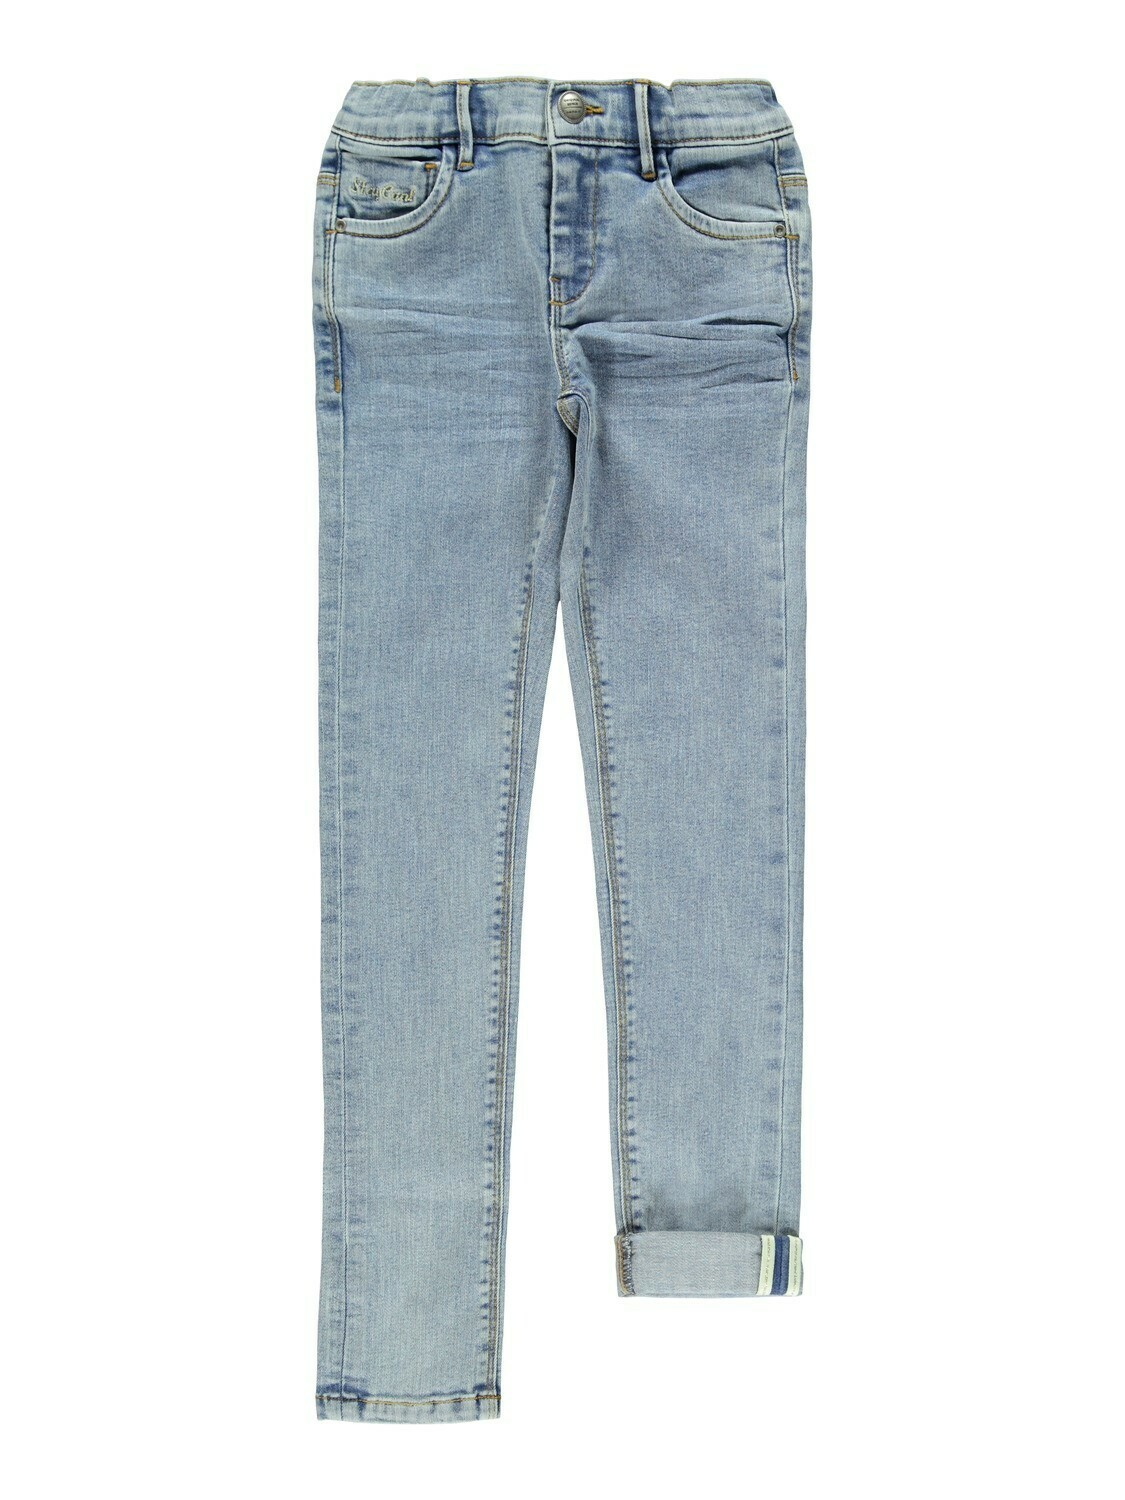 KIDS Broek skinny jeans - POLLY - light blue